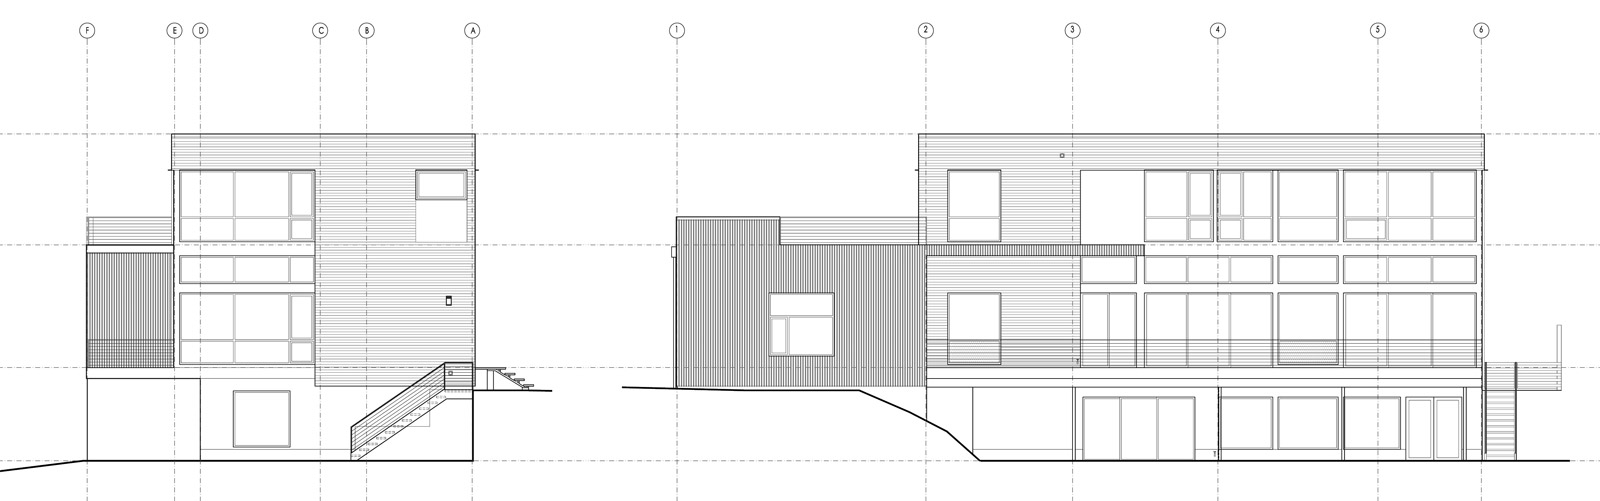 BUILD-LLC-Elevations-02